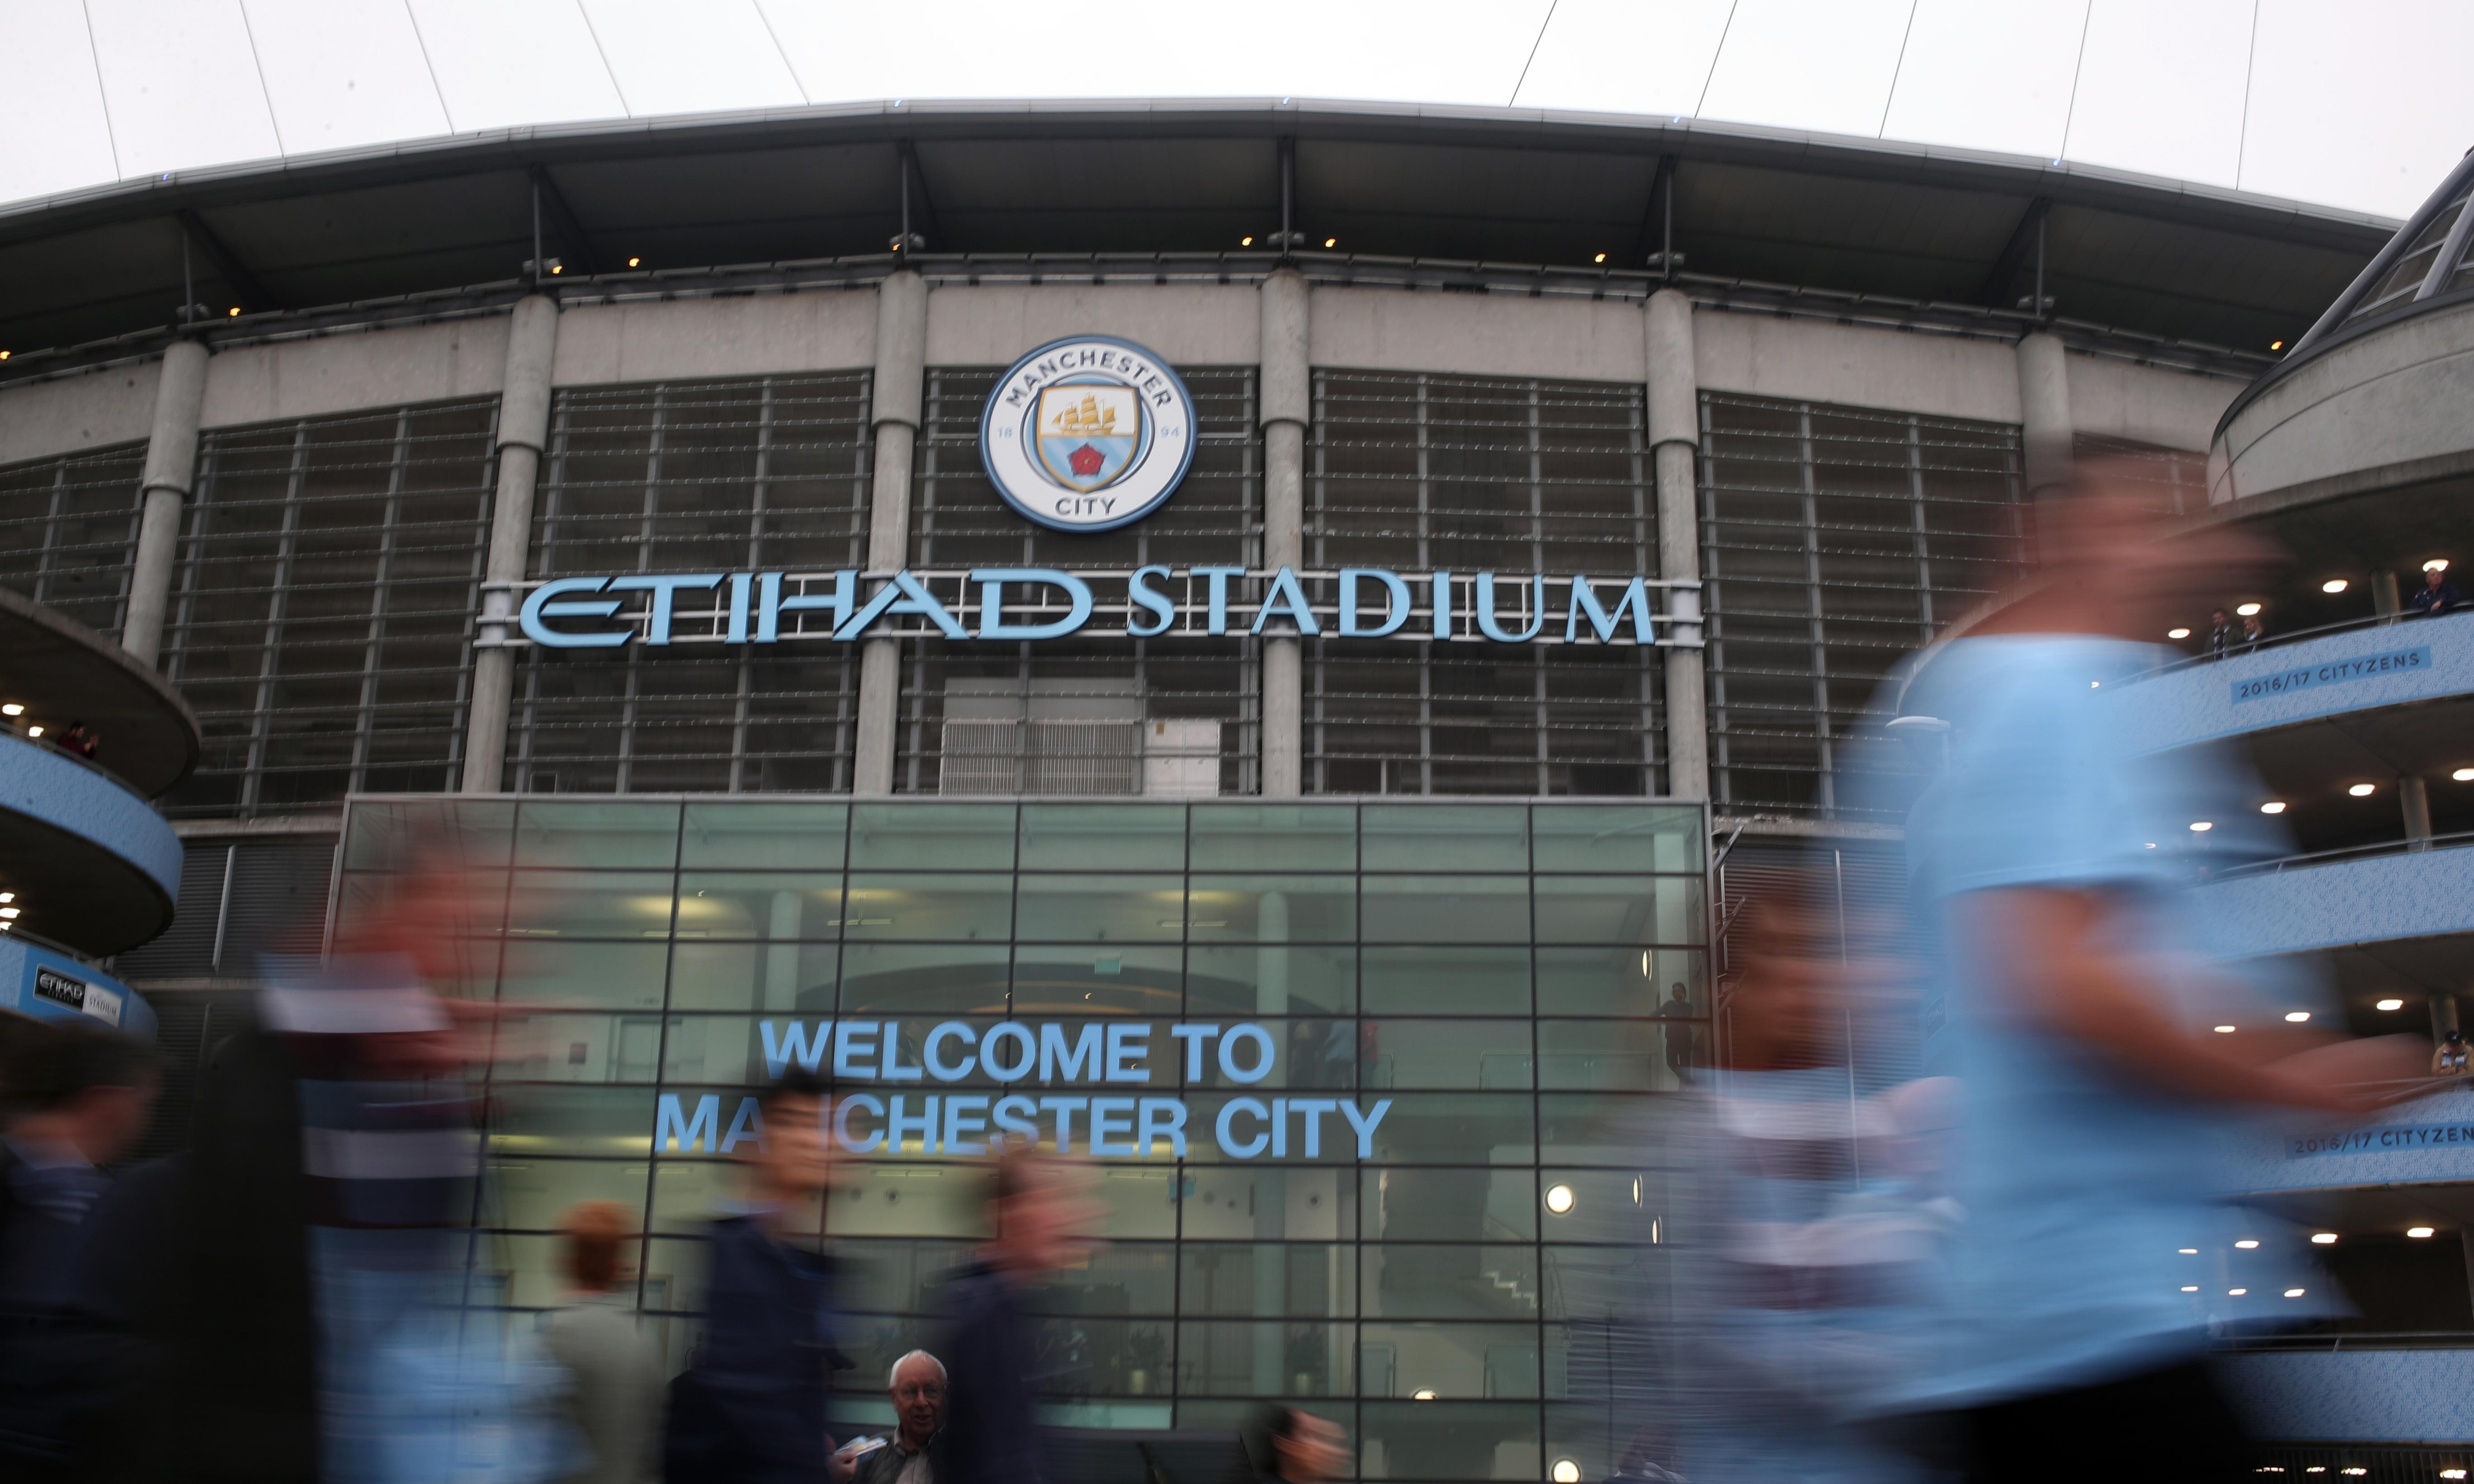 Manchester City warned against using facial recognition on fans